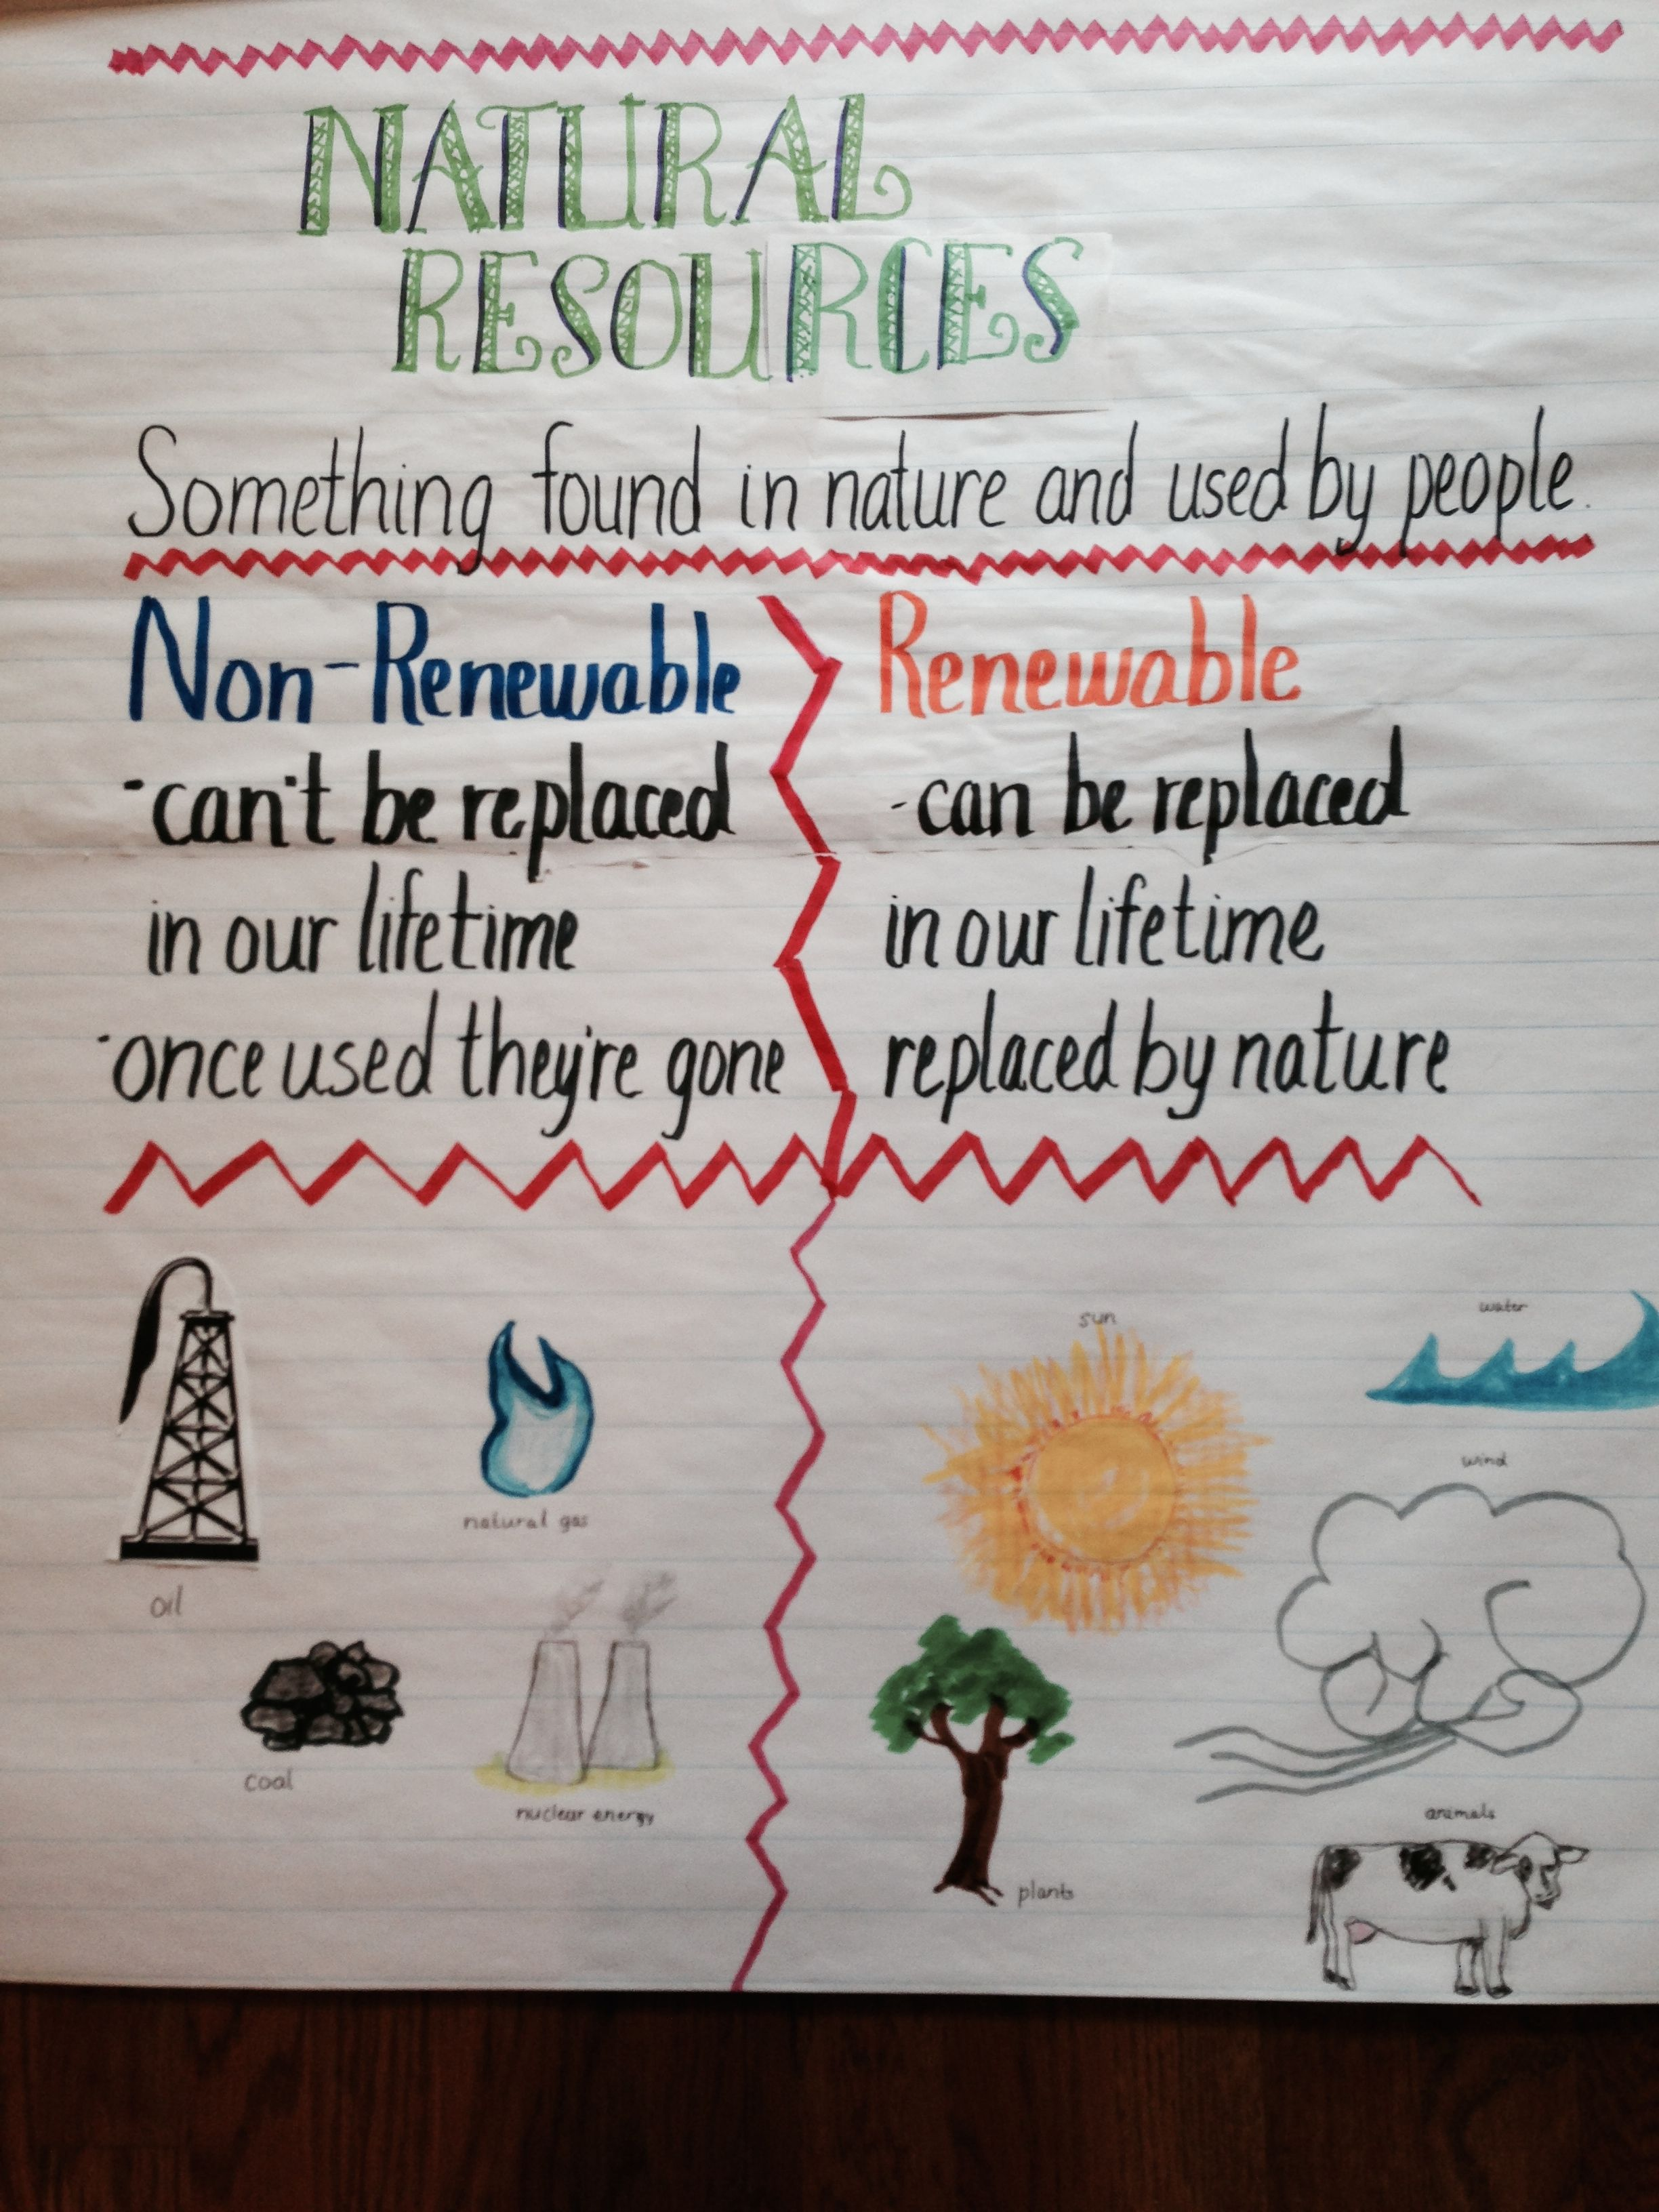 small resolution of 36 Natural resources ideas   nonrenewable resources